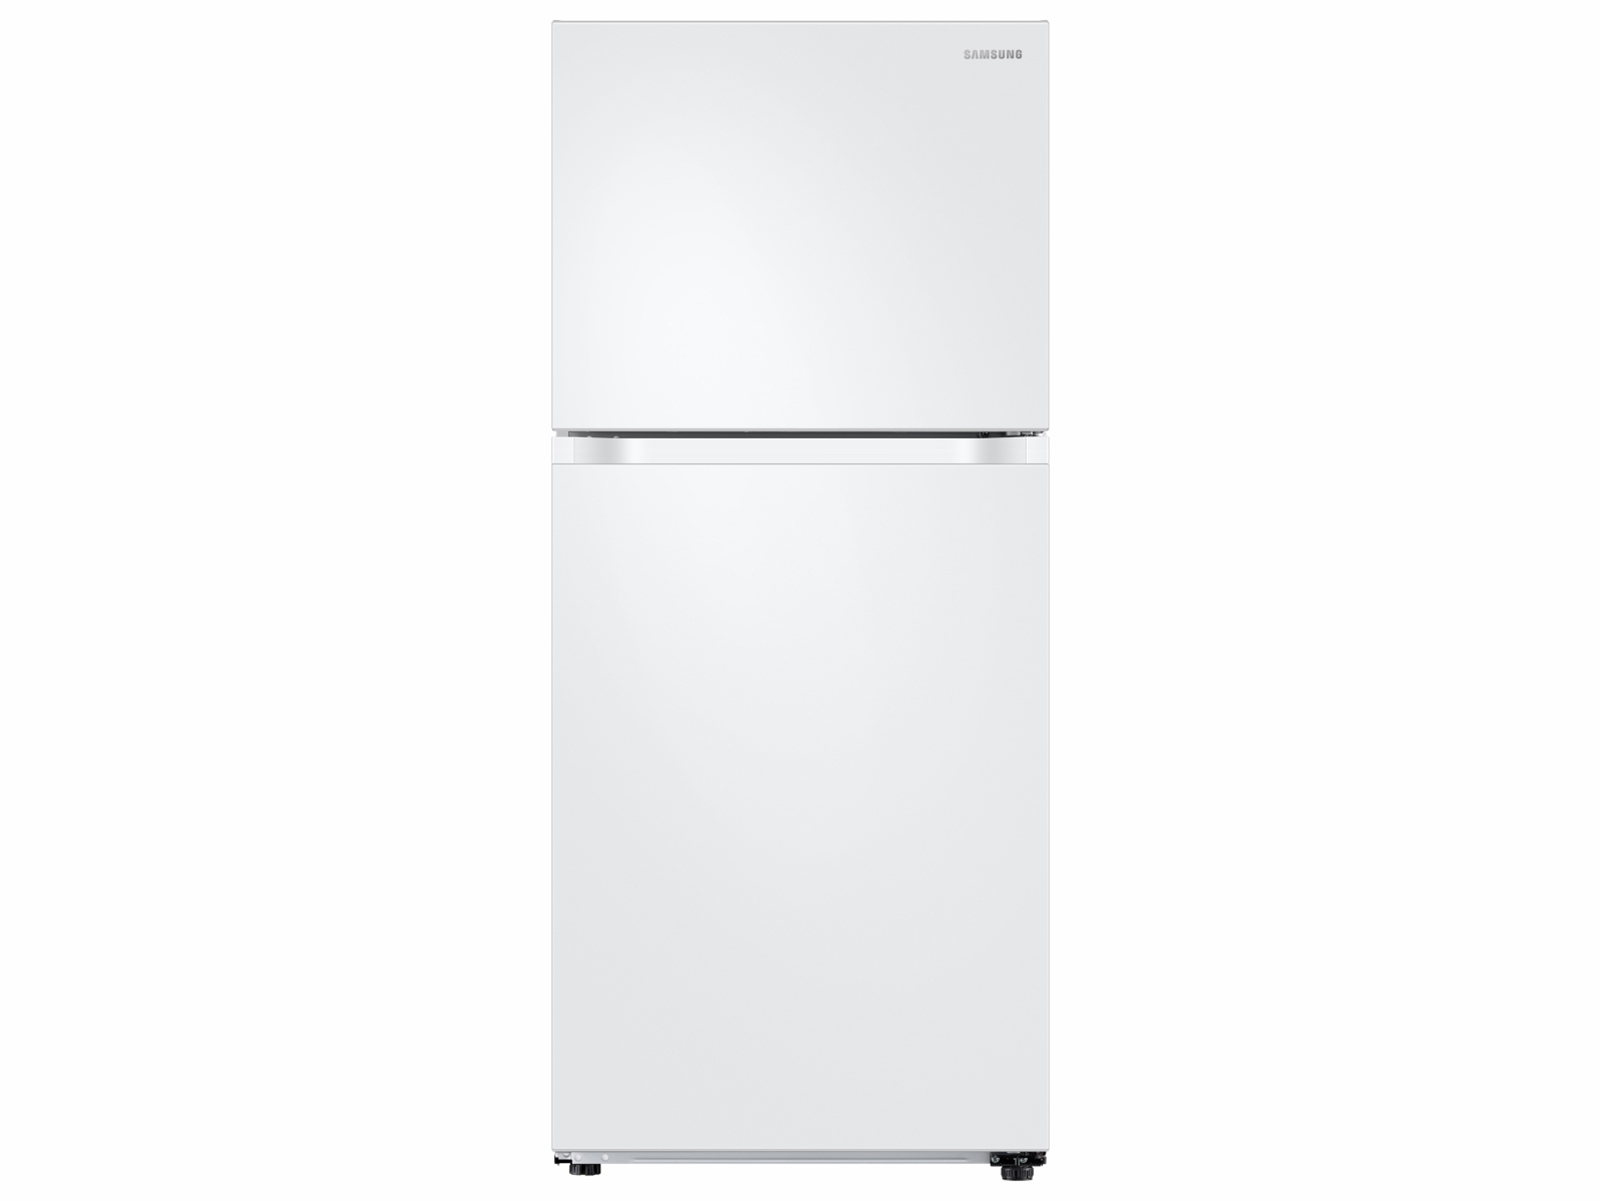 Samsung 18 cu. ft. Top Freezer Refrigerator with FlexZone and Ice Maker in White